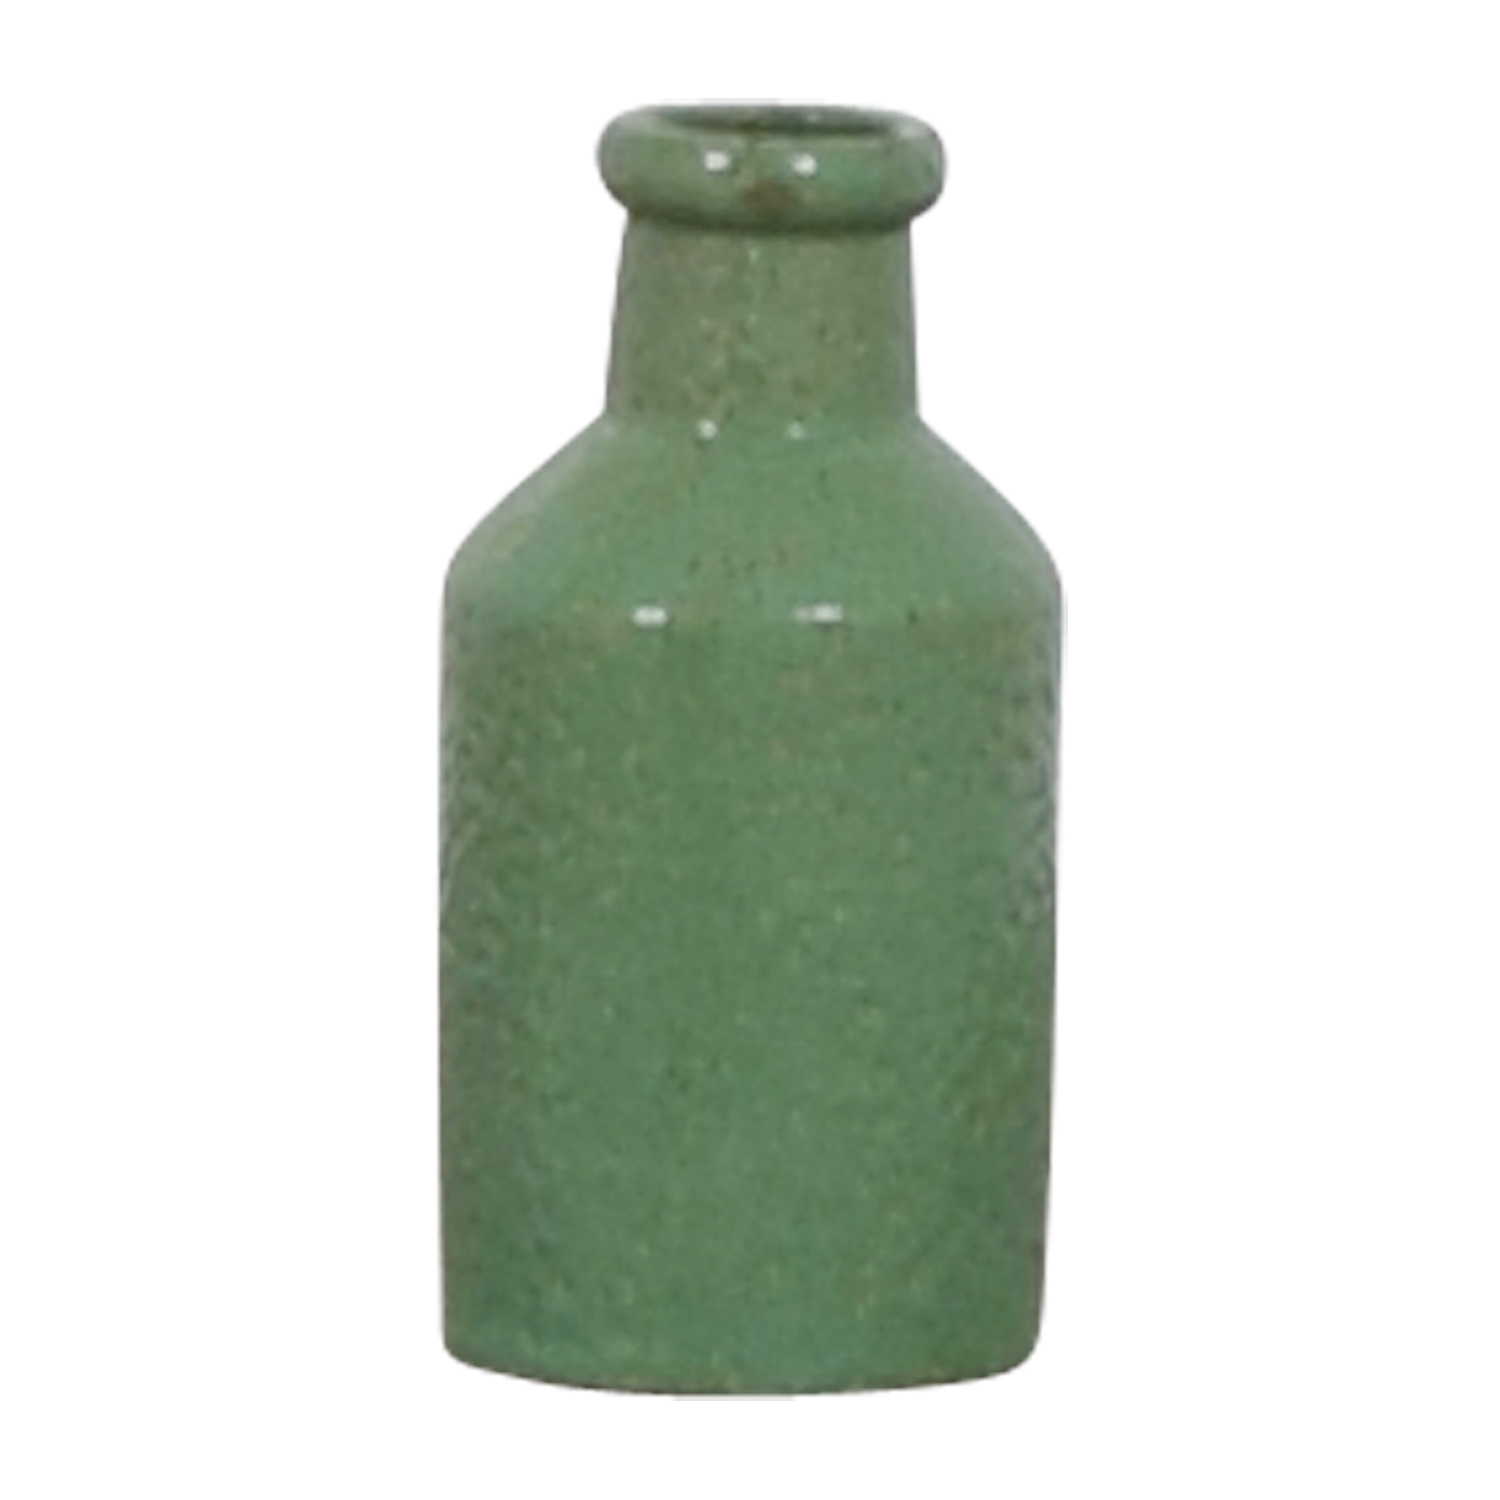 Green Ceramic Bottle Decorative Accents